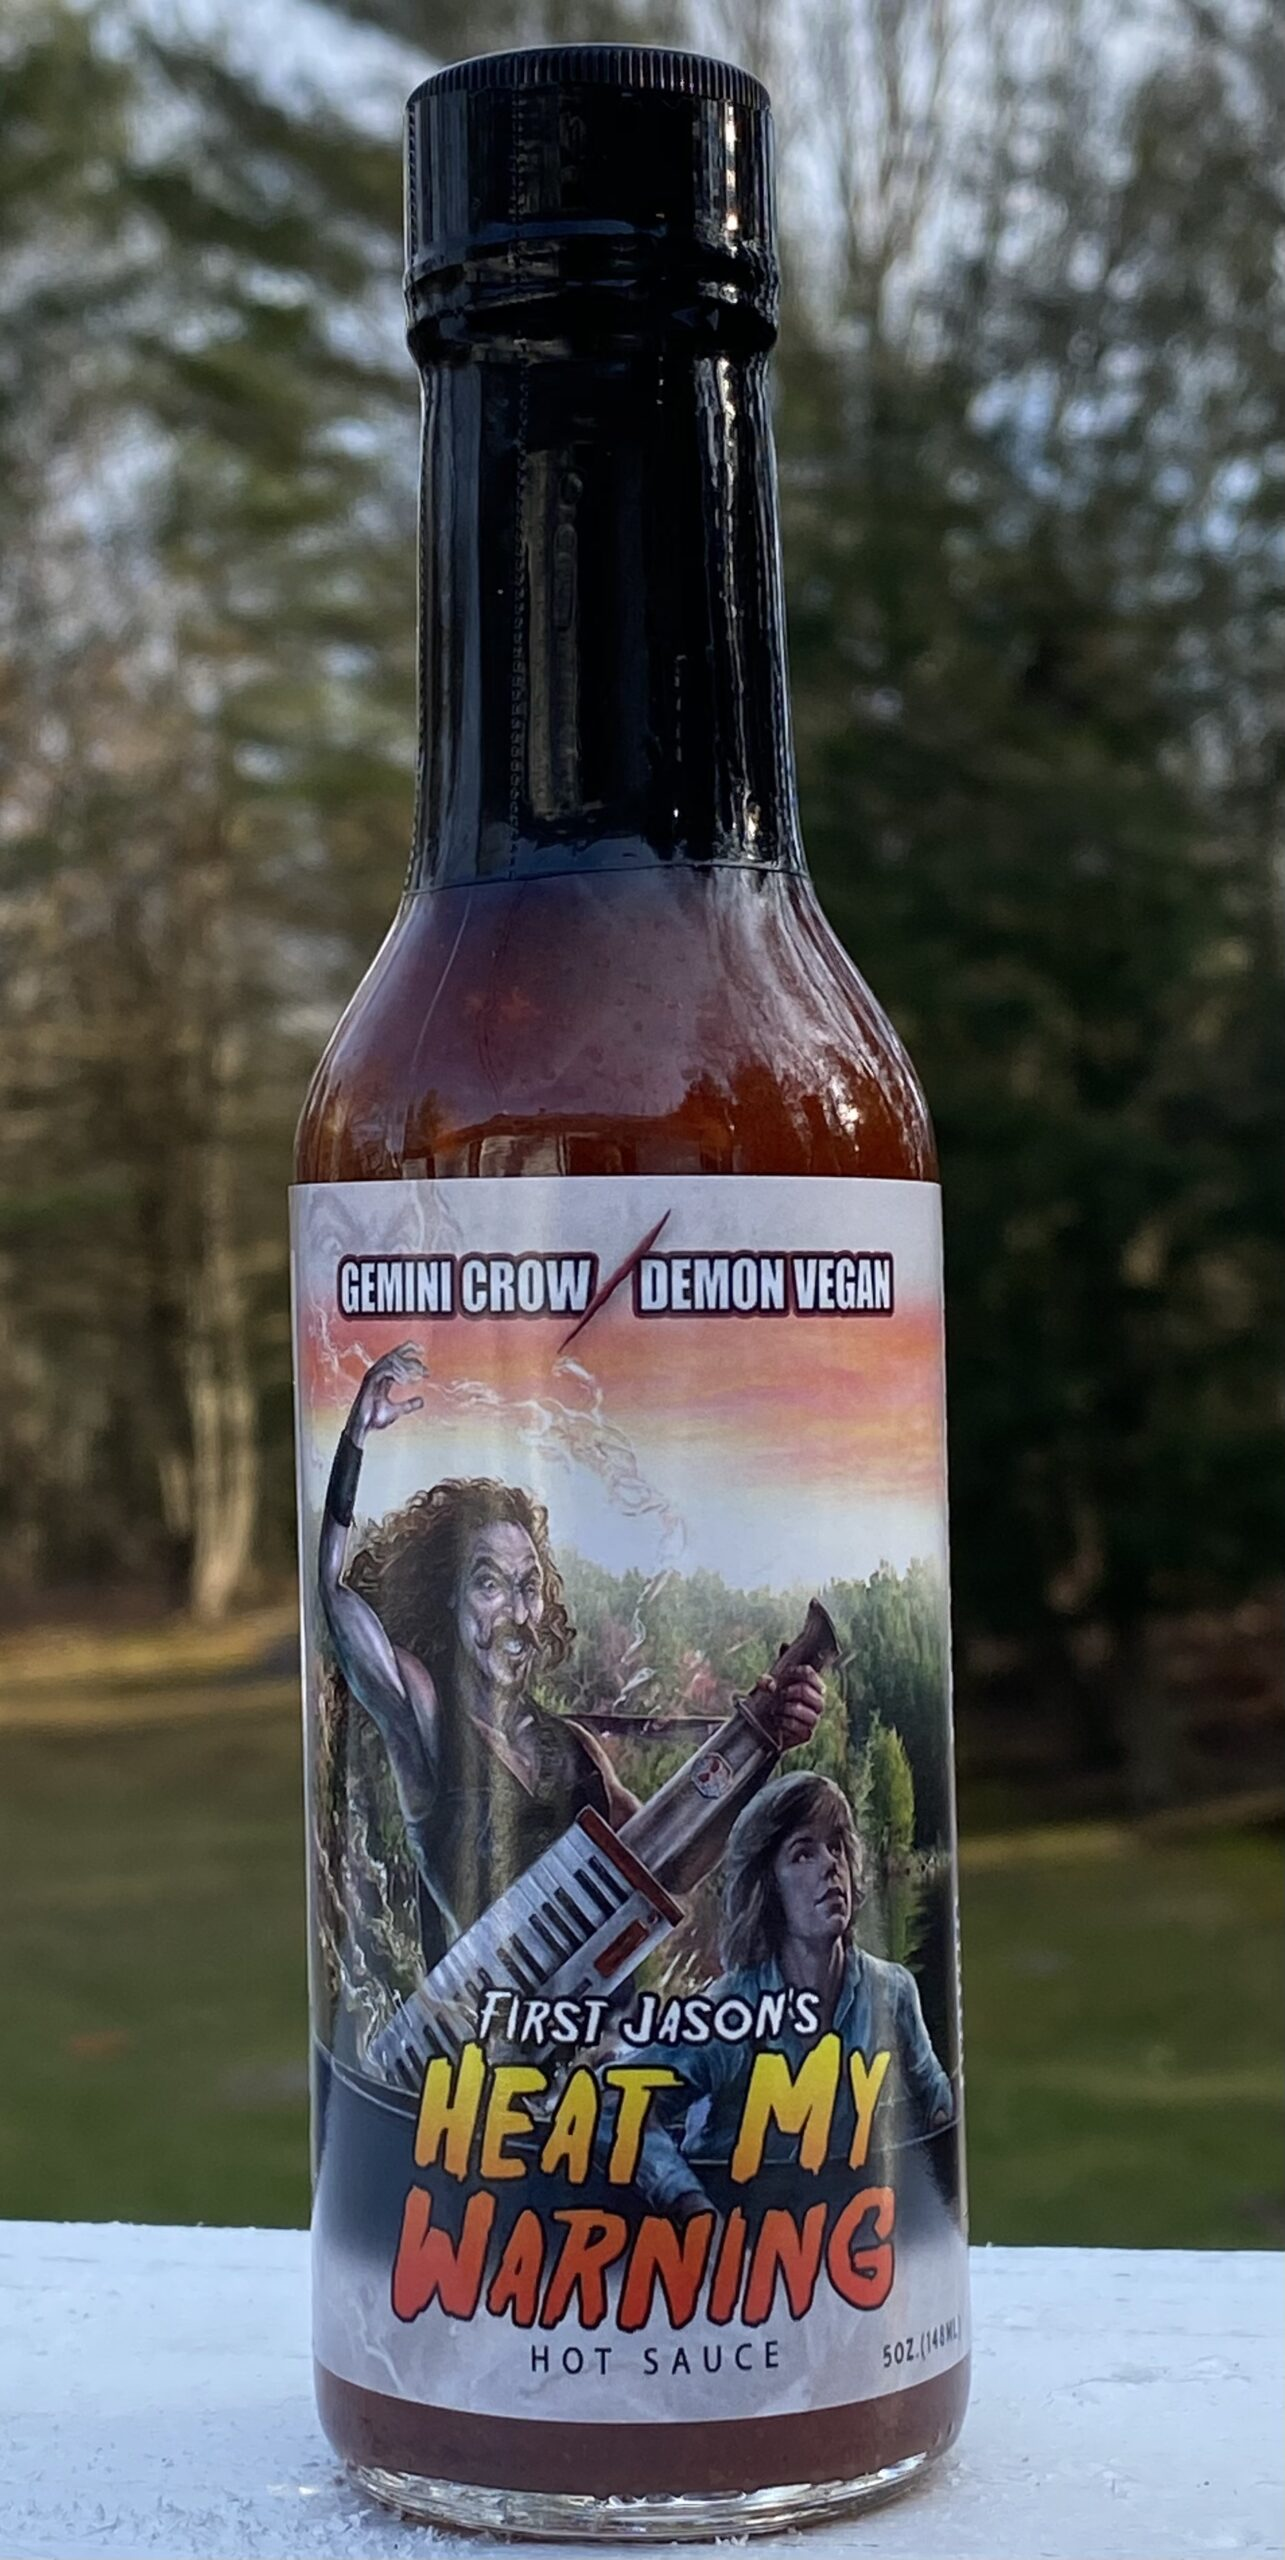 FIRST JASONs HEAT MY WARNING  NEW HOT SAUCE FROM GEMINI CROW